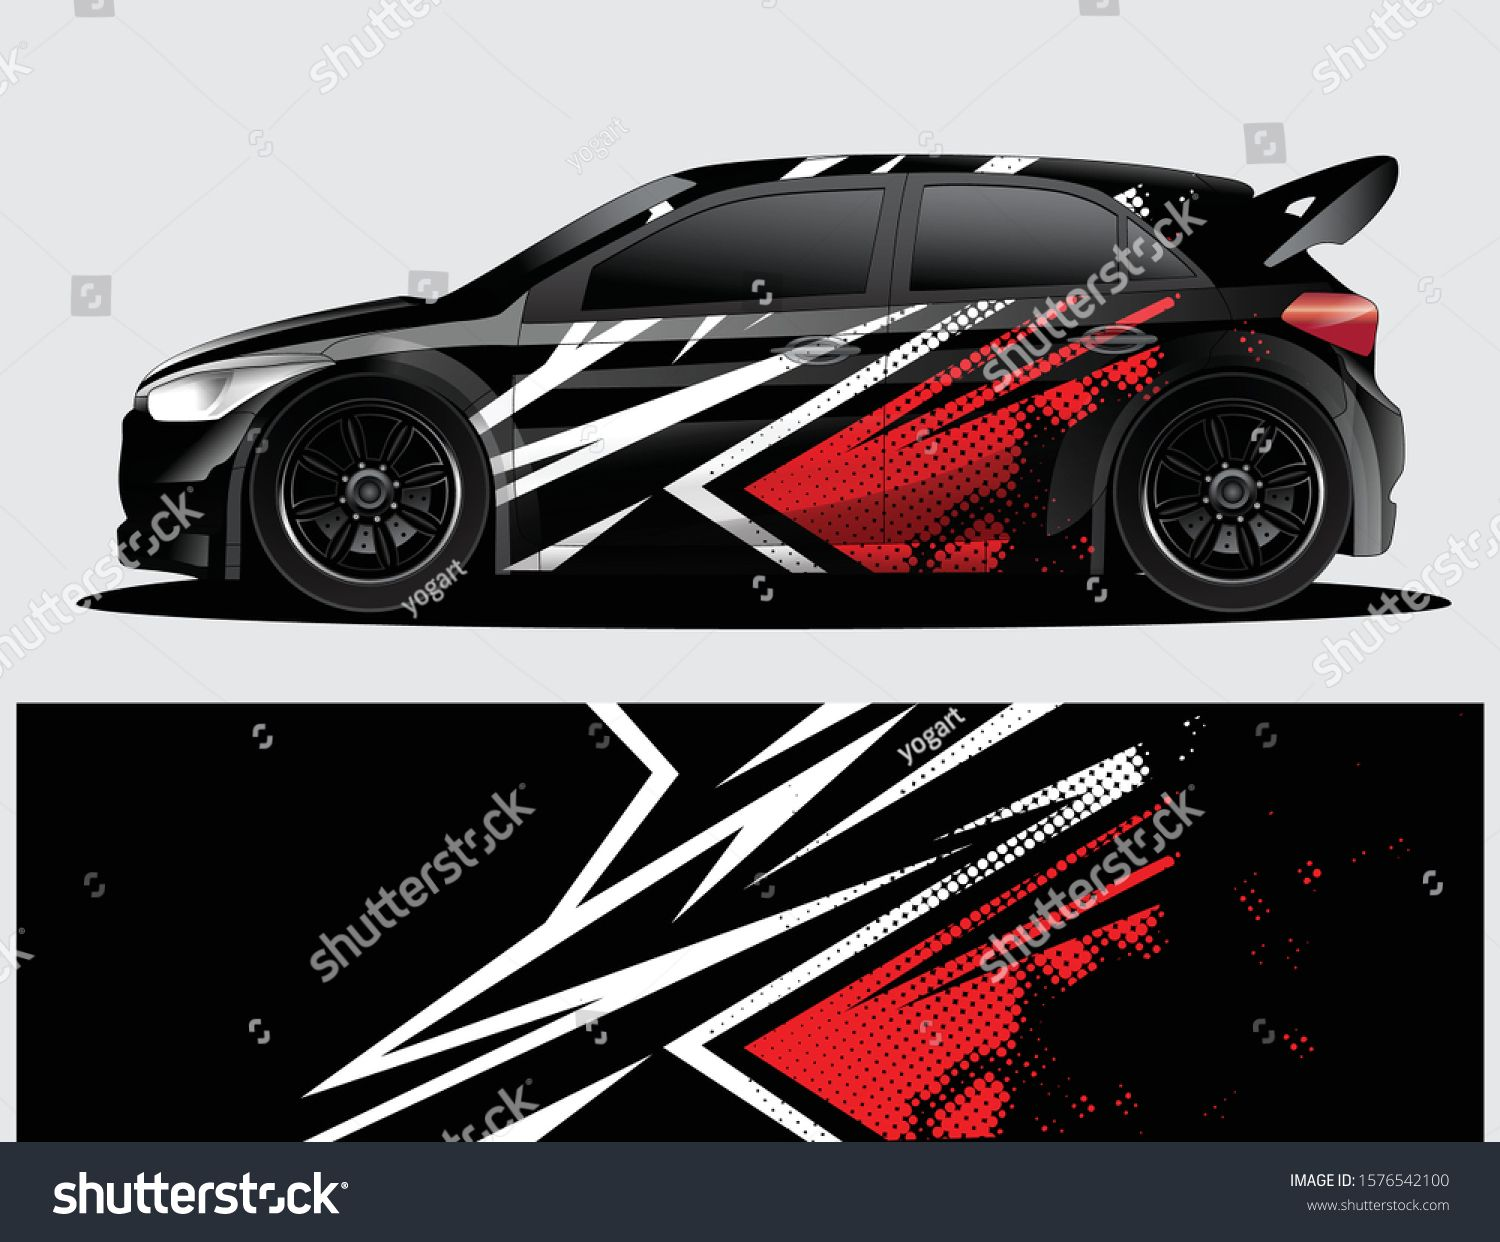 Rally Car Decal Graphic Wrap Vector Stock Vector (Royalty Free) 1576542100